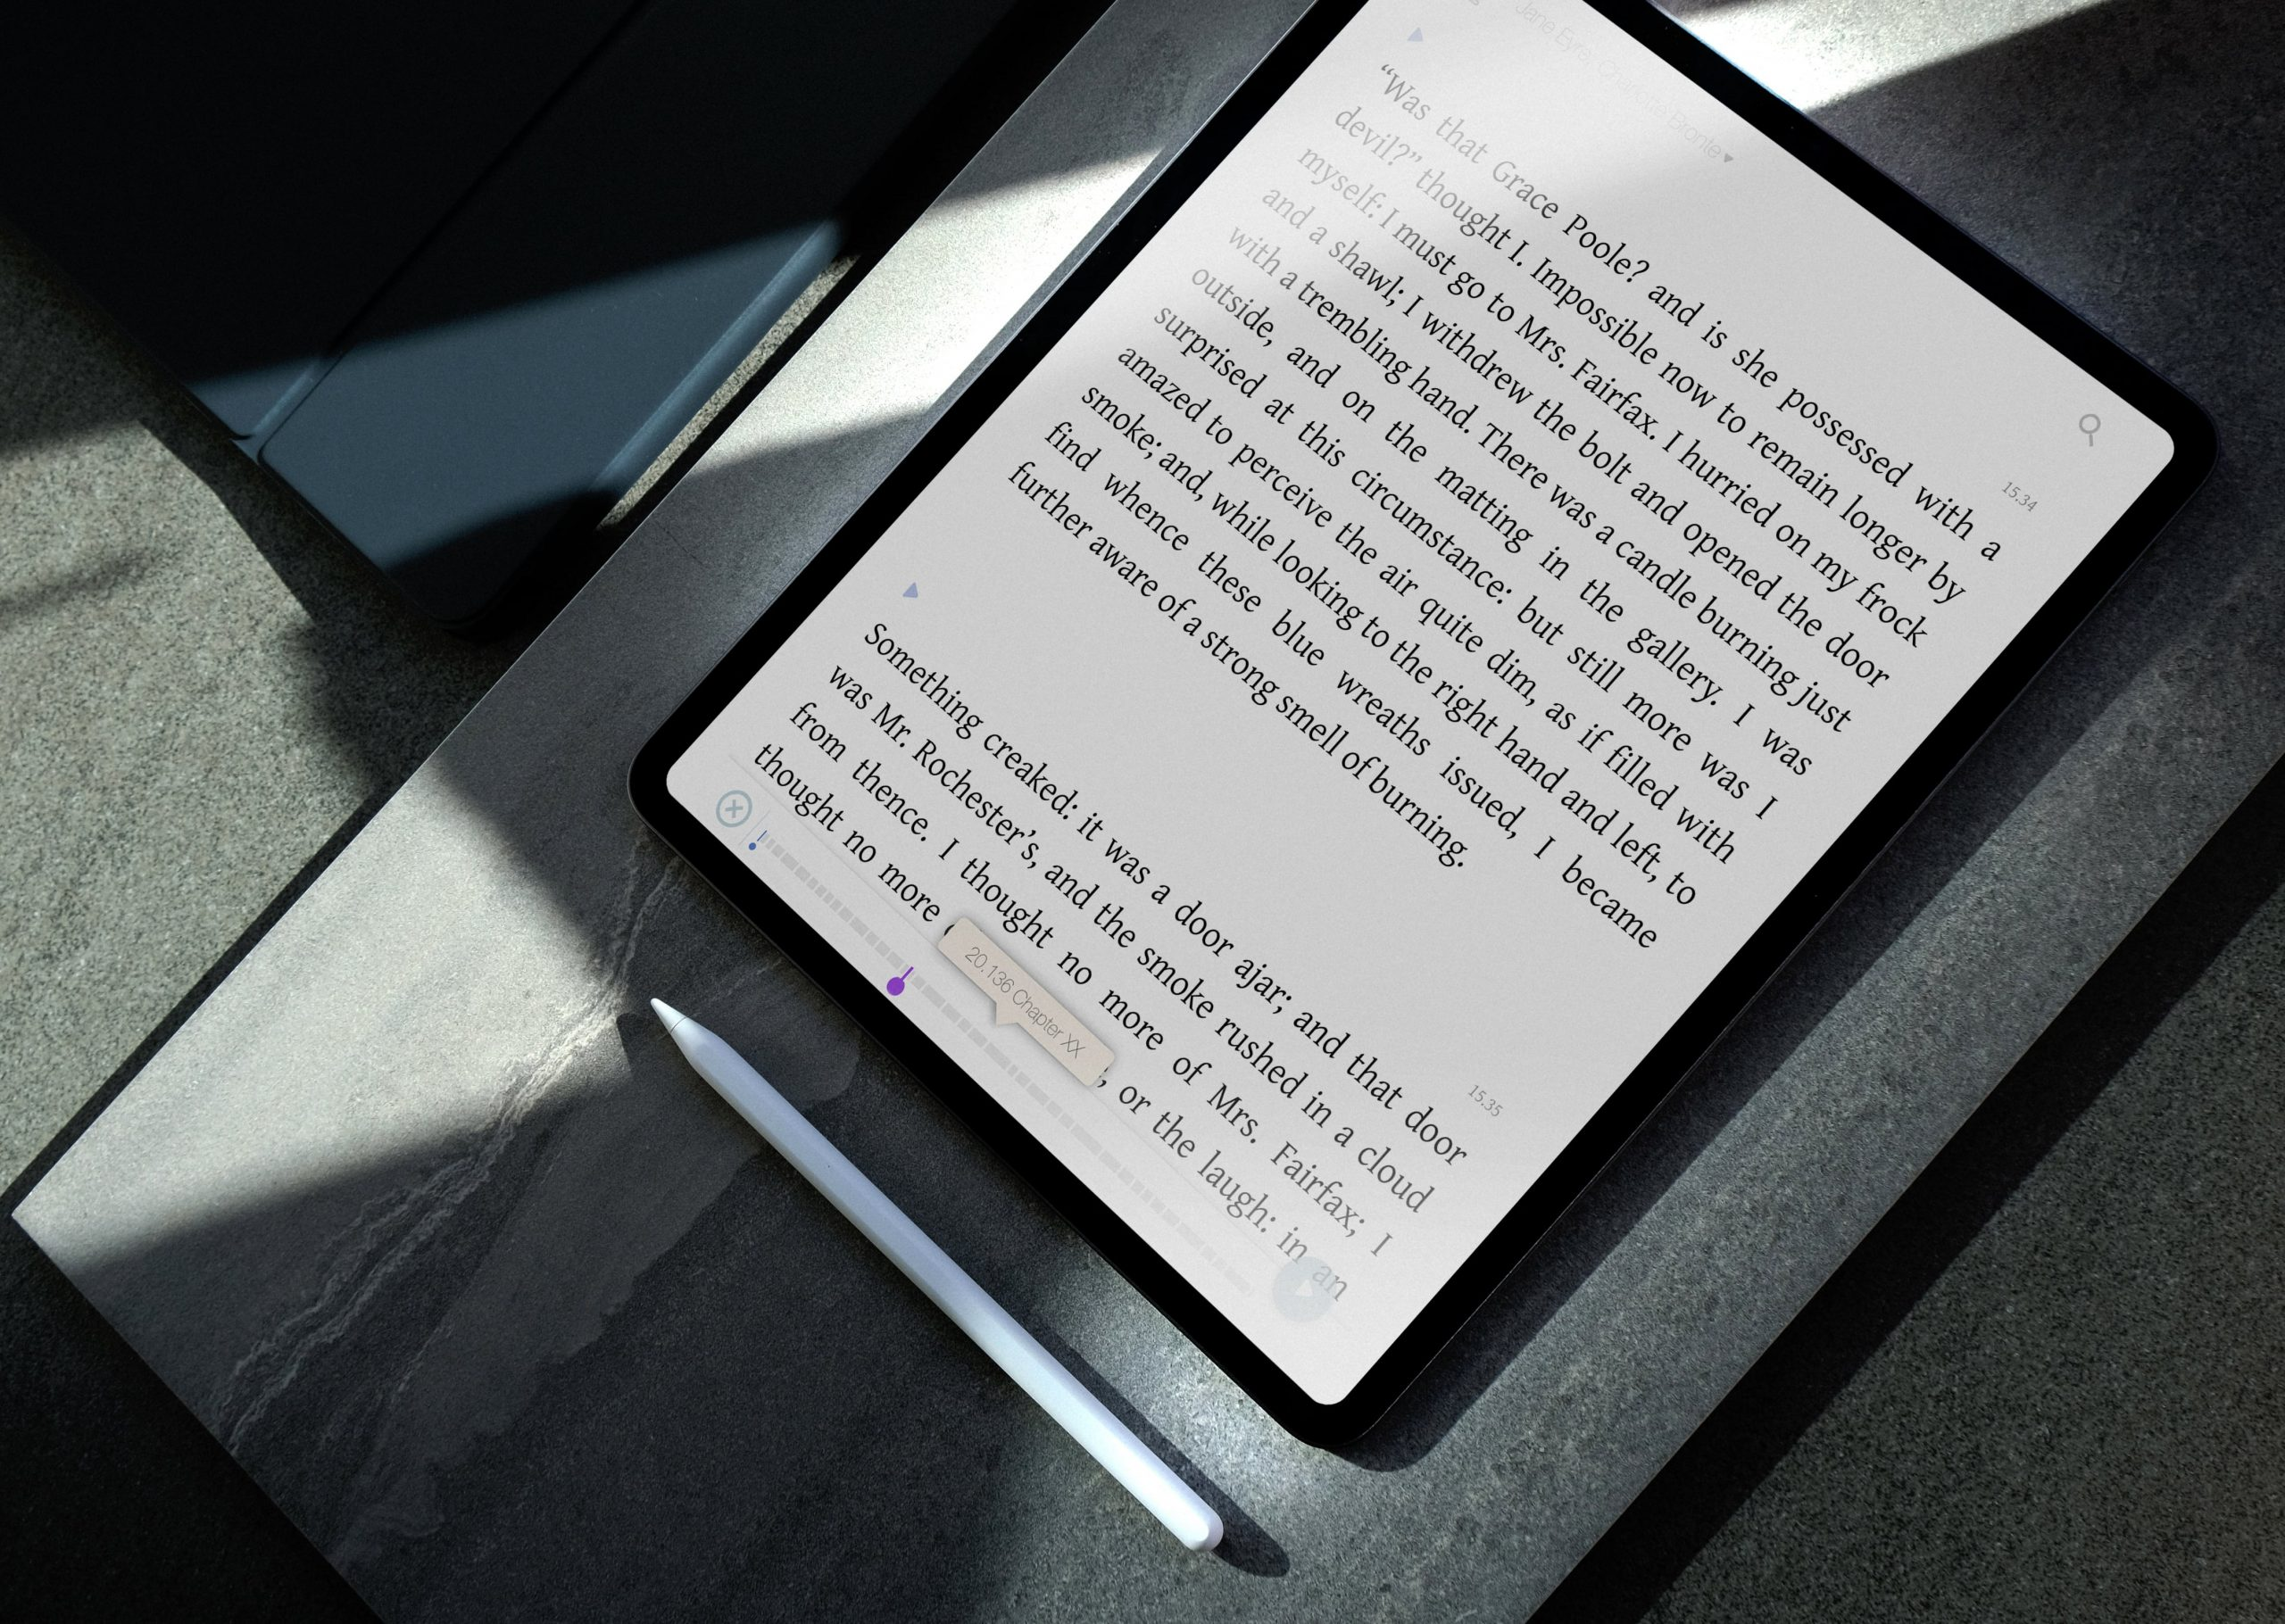 A piece of tex in WholeReader application on a tablet screen